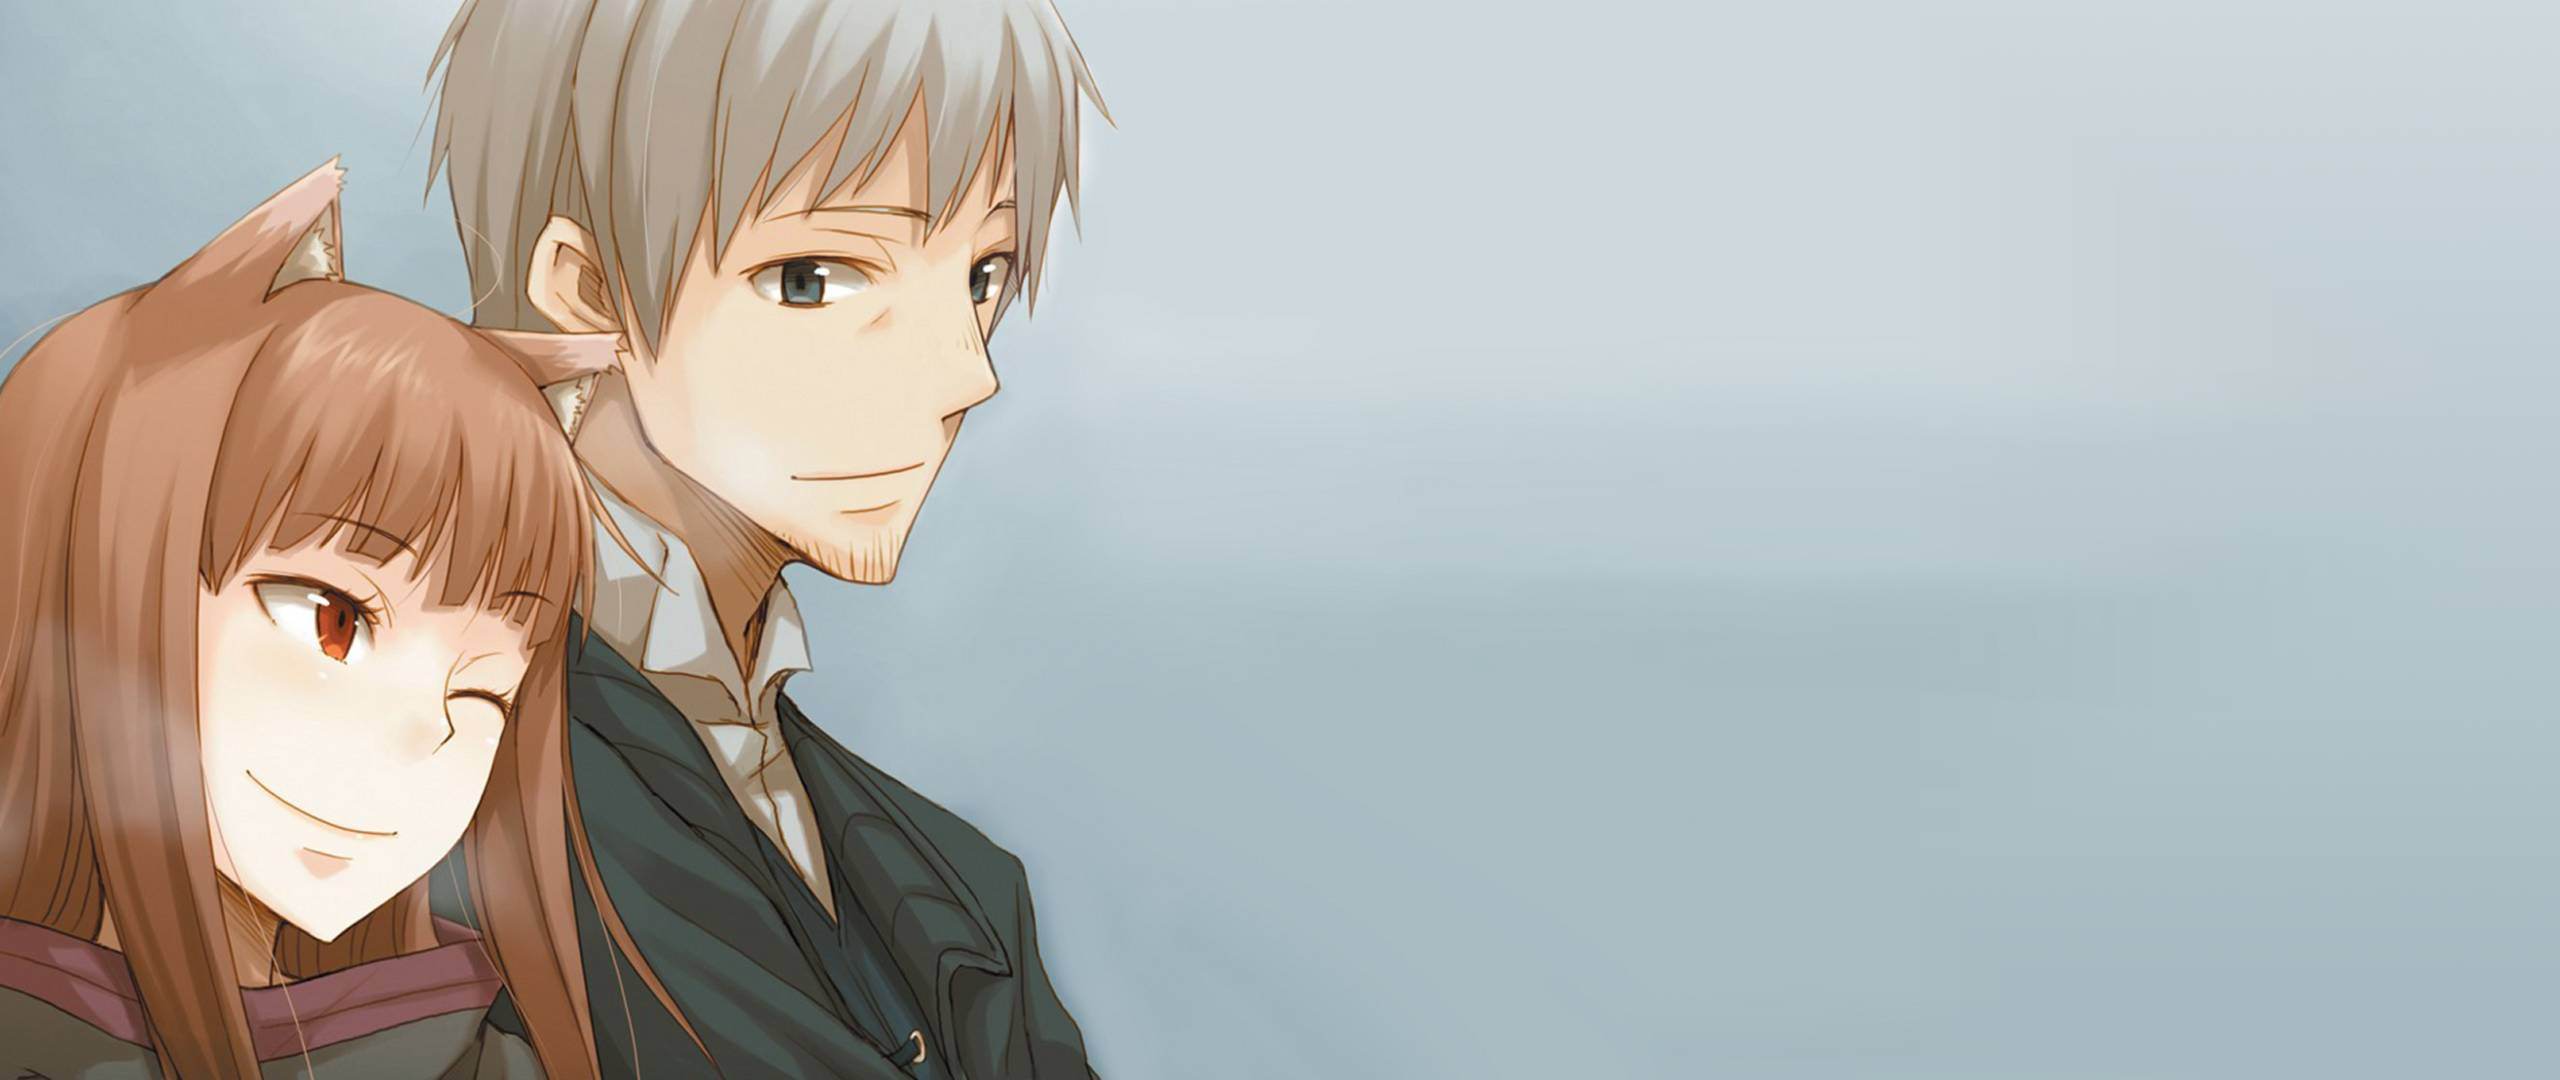 392075 Spice And Wolf Holo Lawrence Inseparablepng 2560x1080